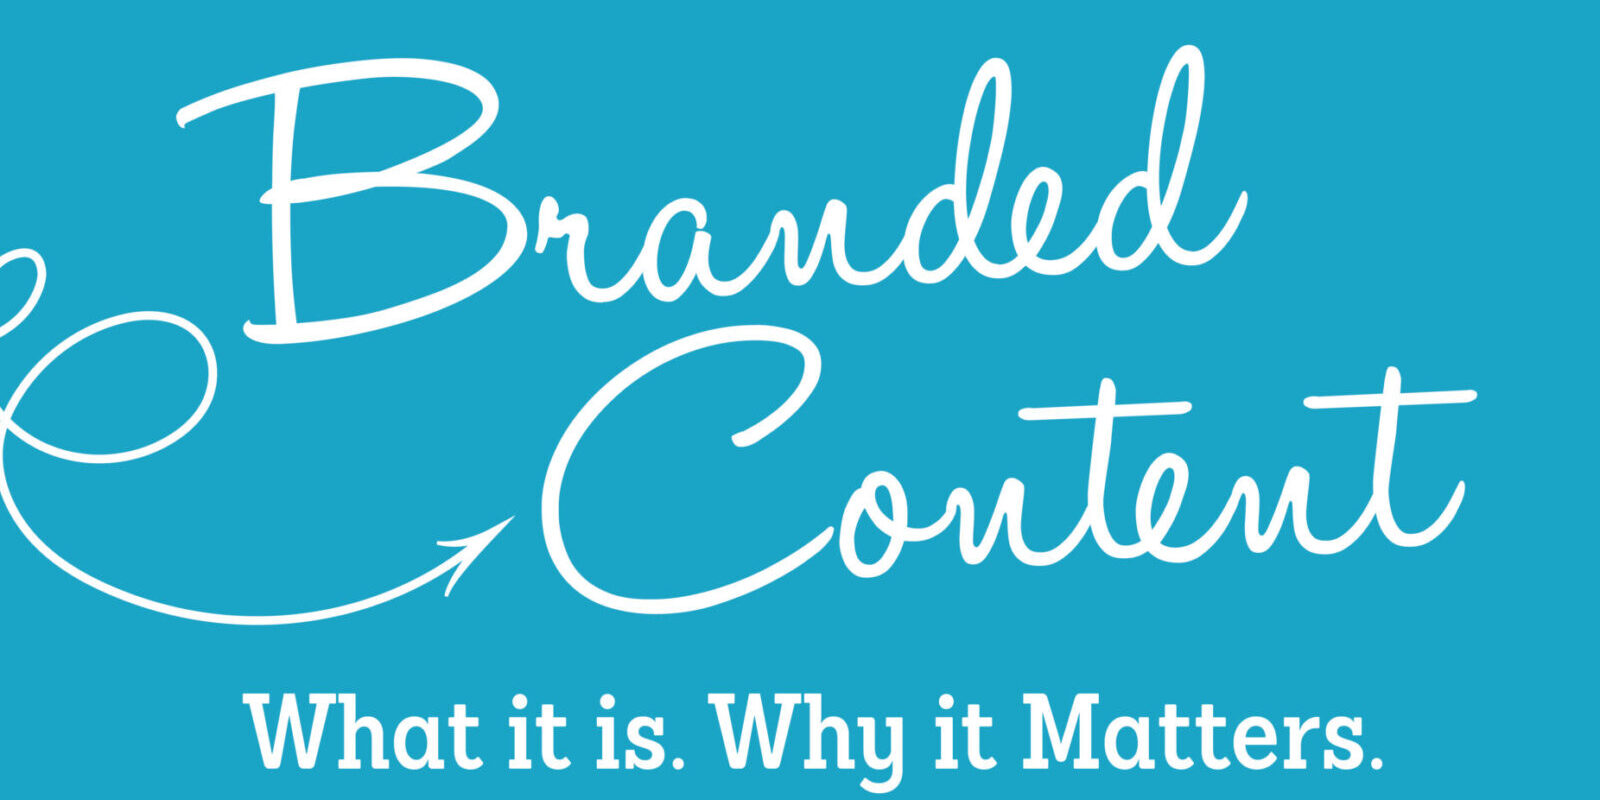 What is branded content and why does it matter?